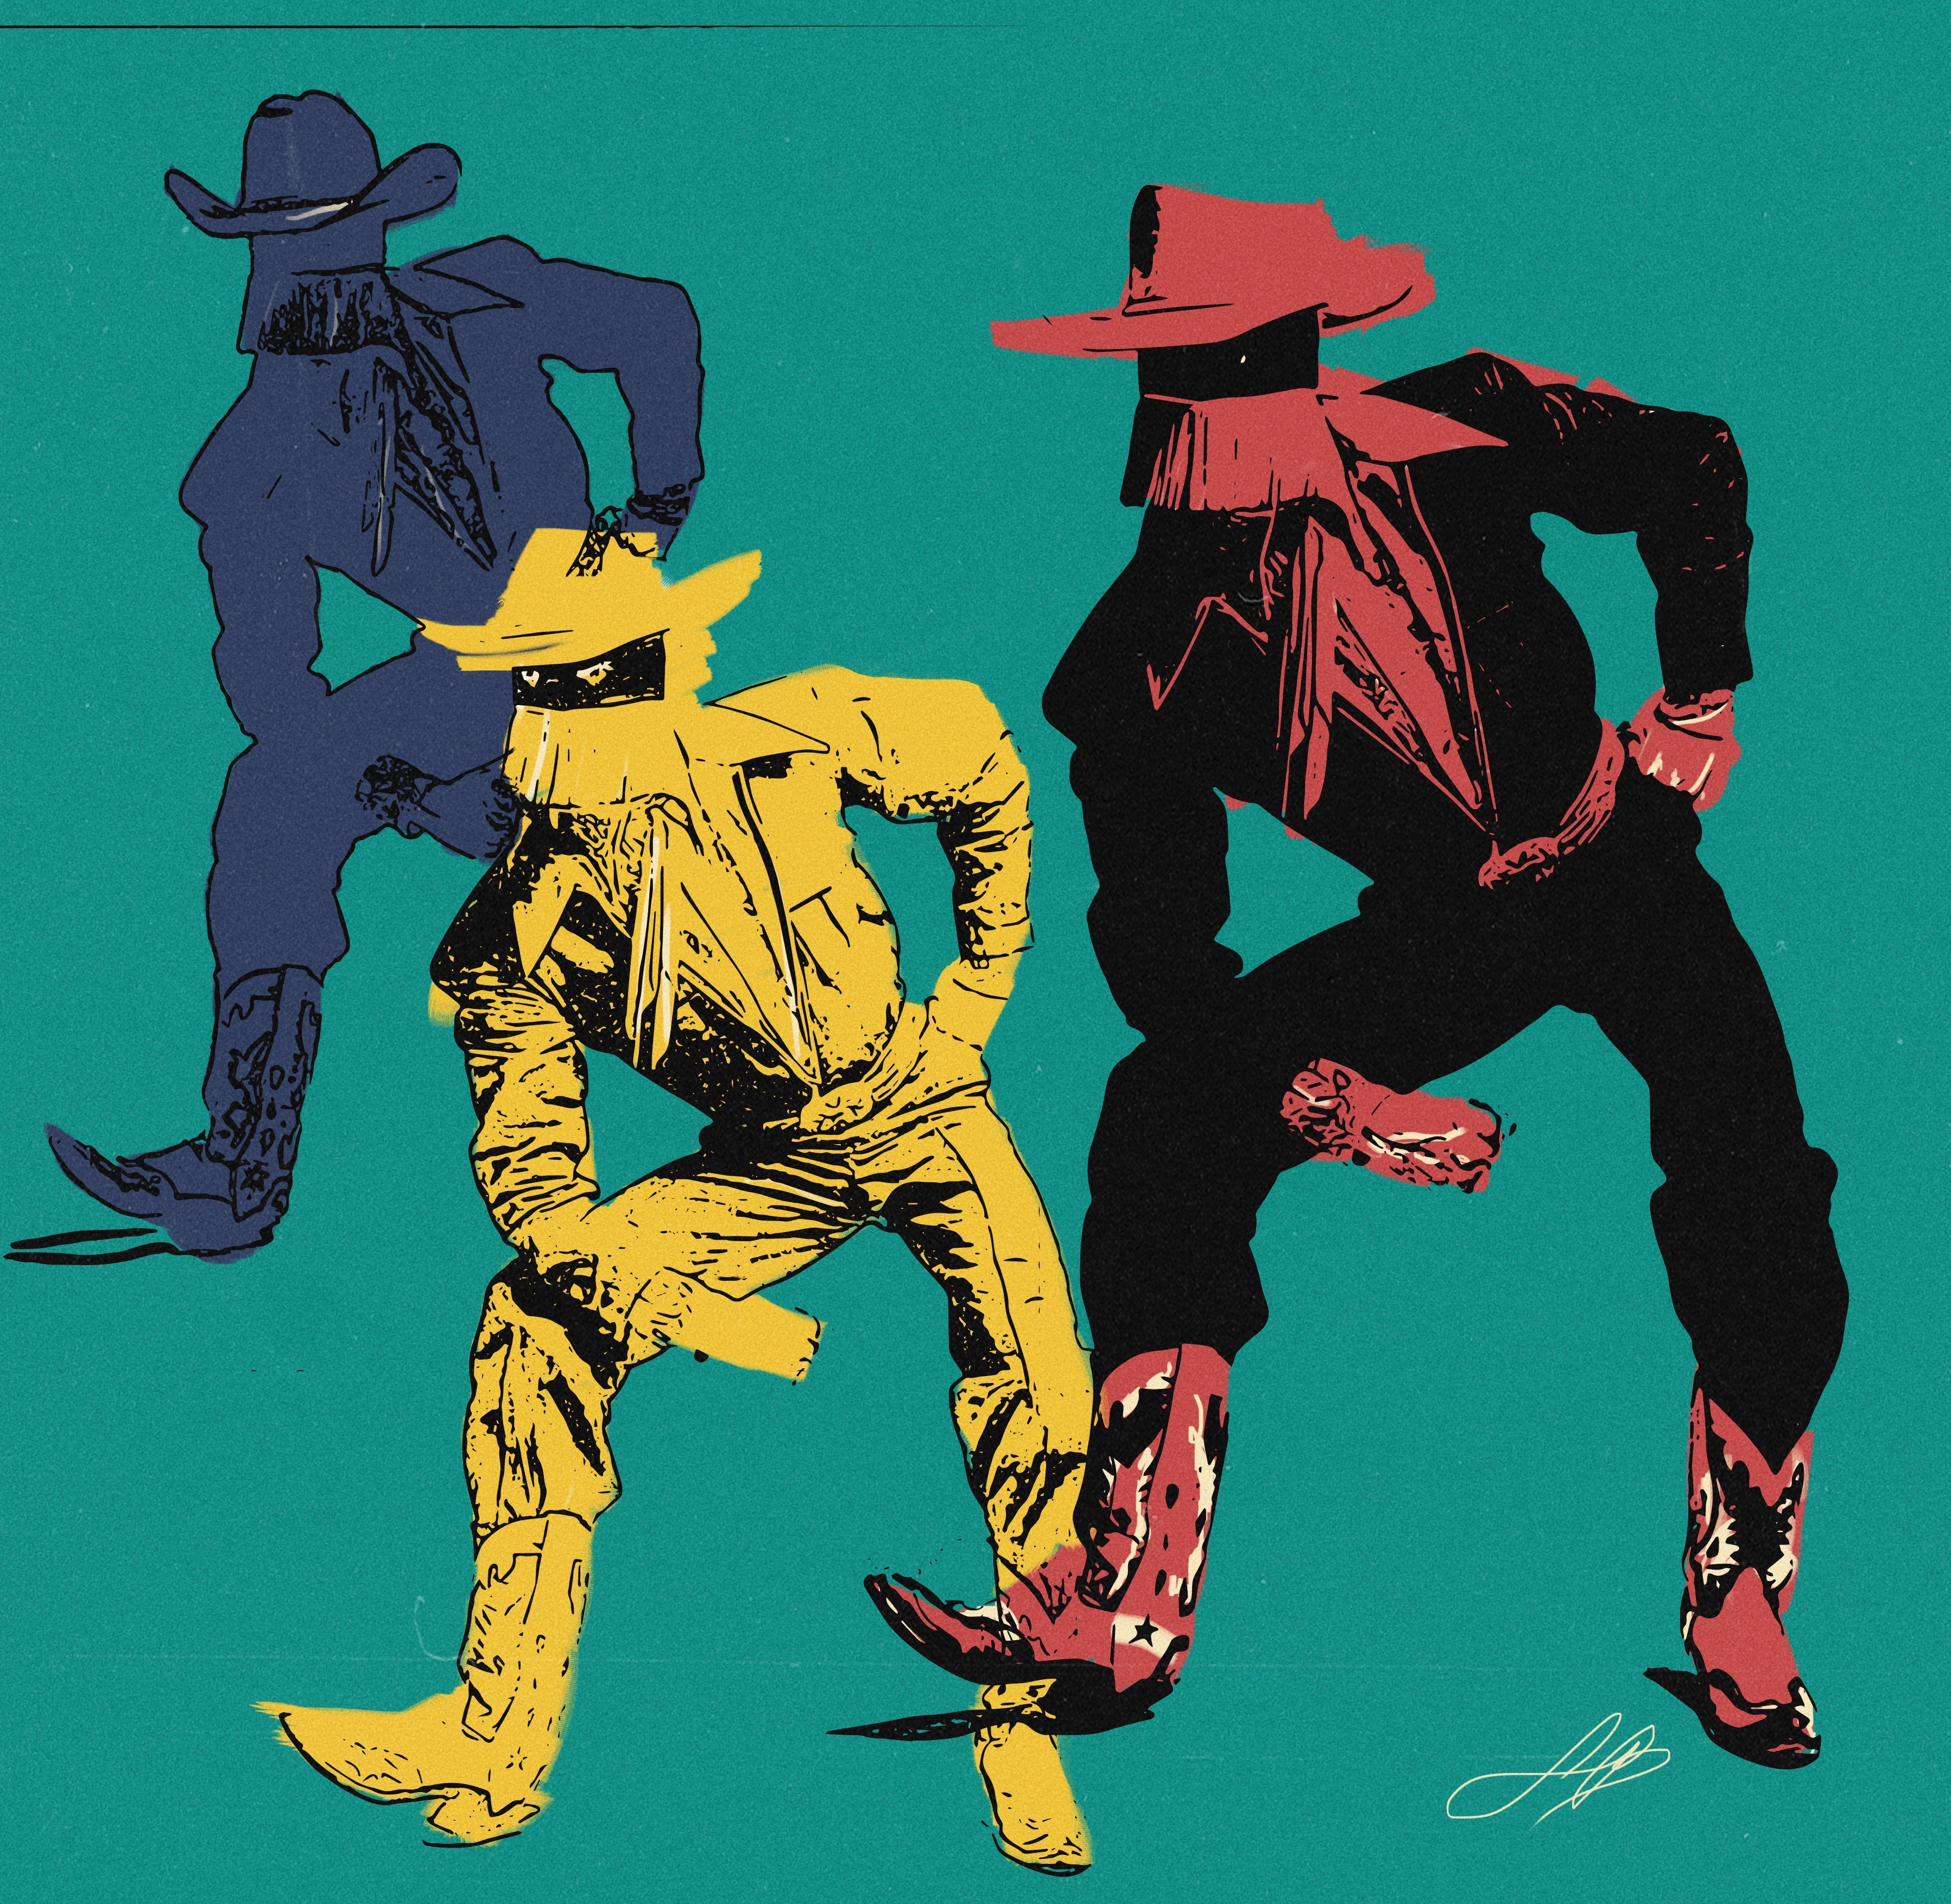 ORVILLE PECK | AINT NO GLORY IN THE WEST